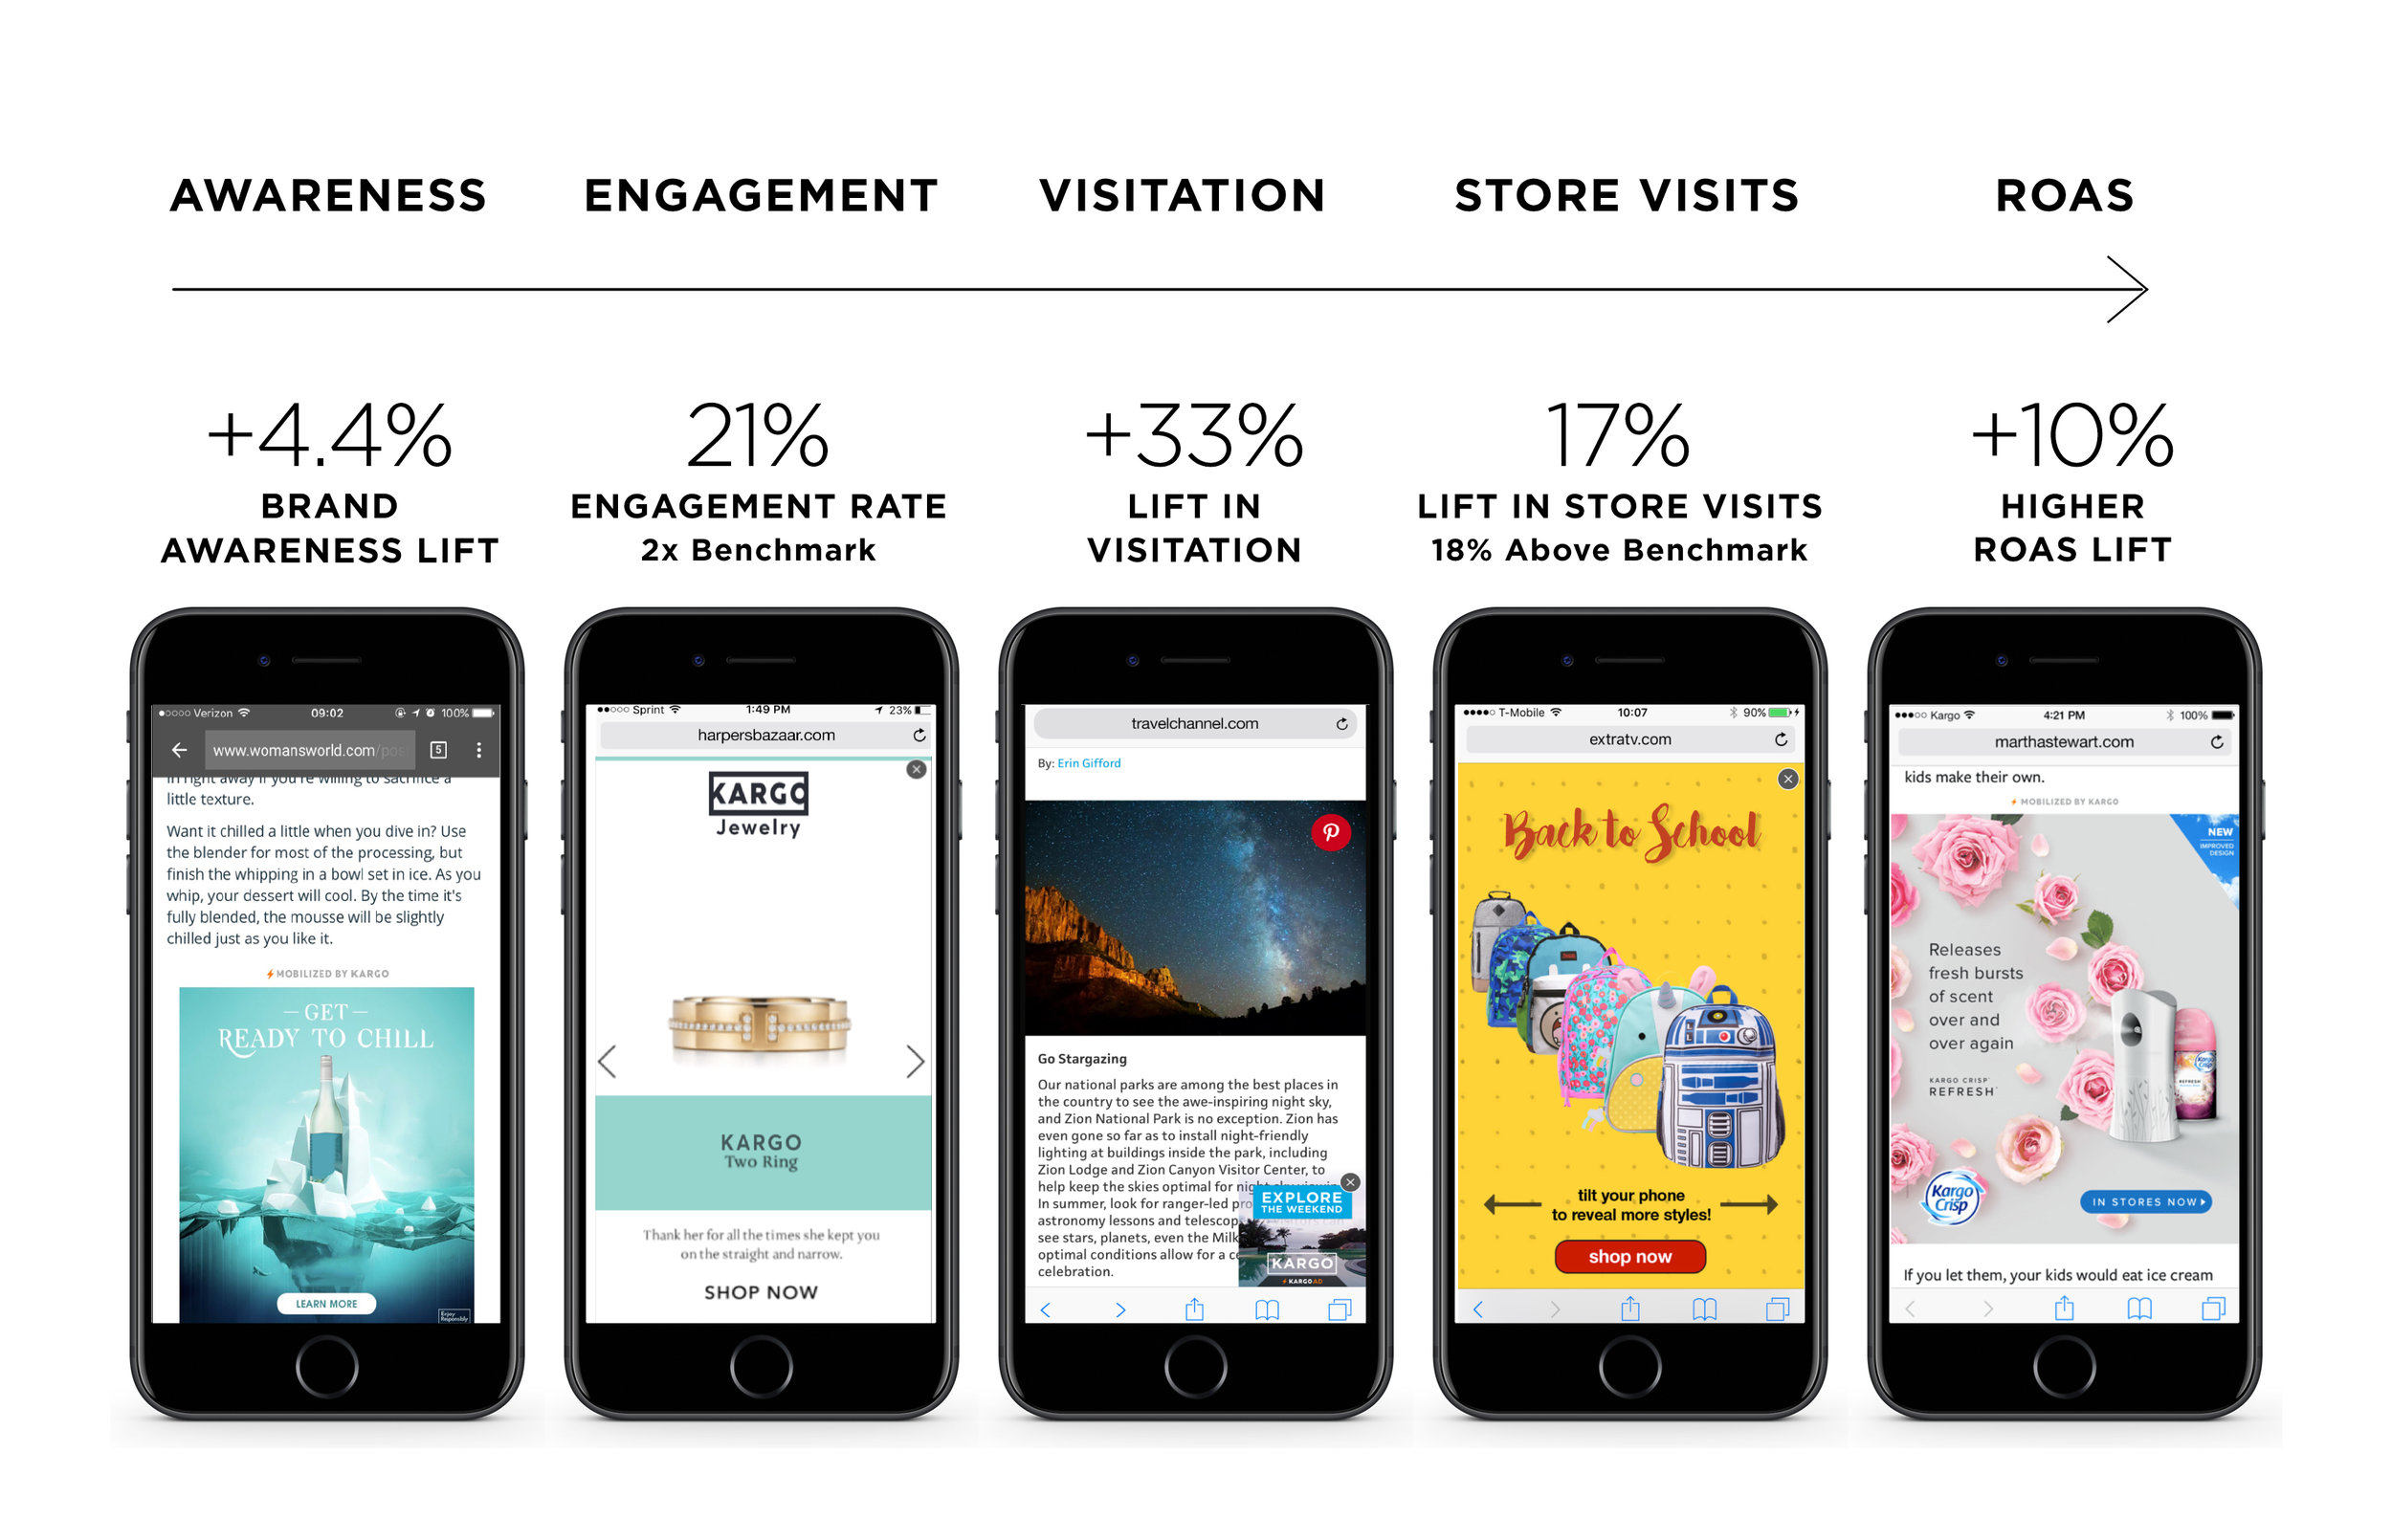 Kargo helps lift brand awareness, engagement, visitation, store traffic, ROAS